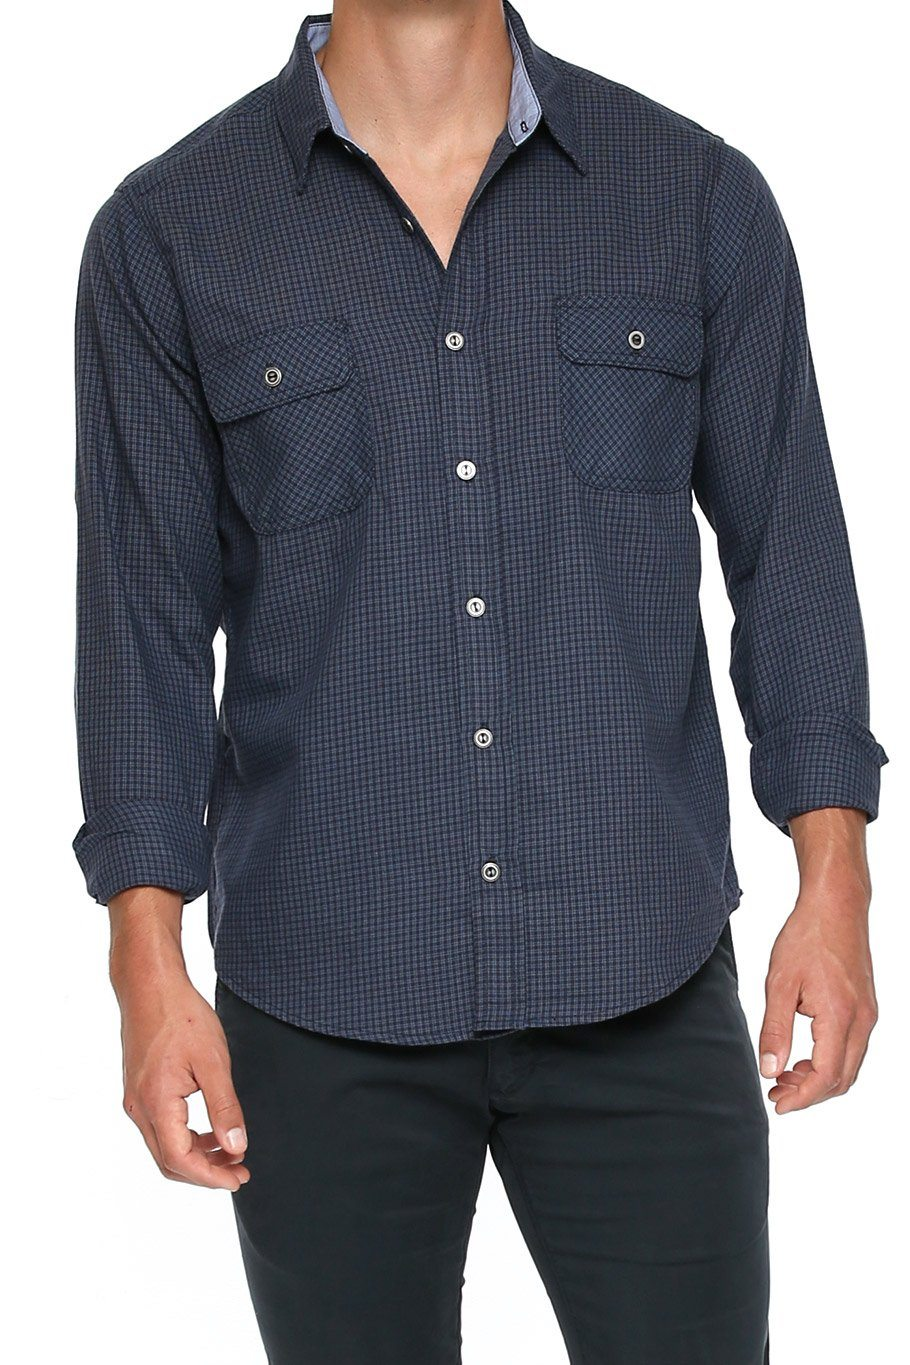 Men's Button Up Shirt - Blue Check - Shore